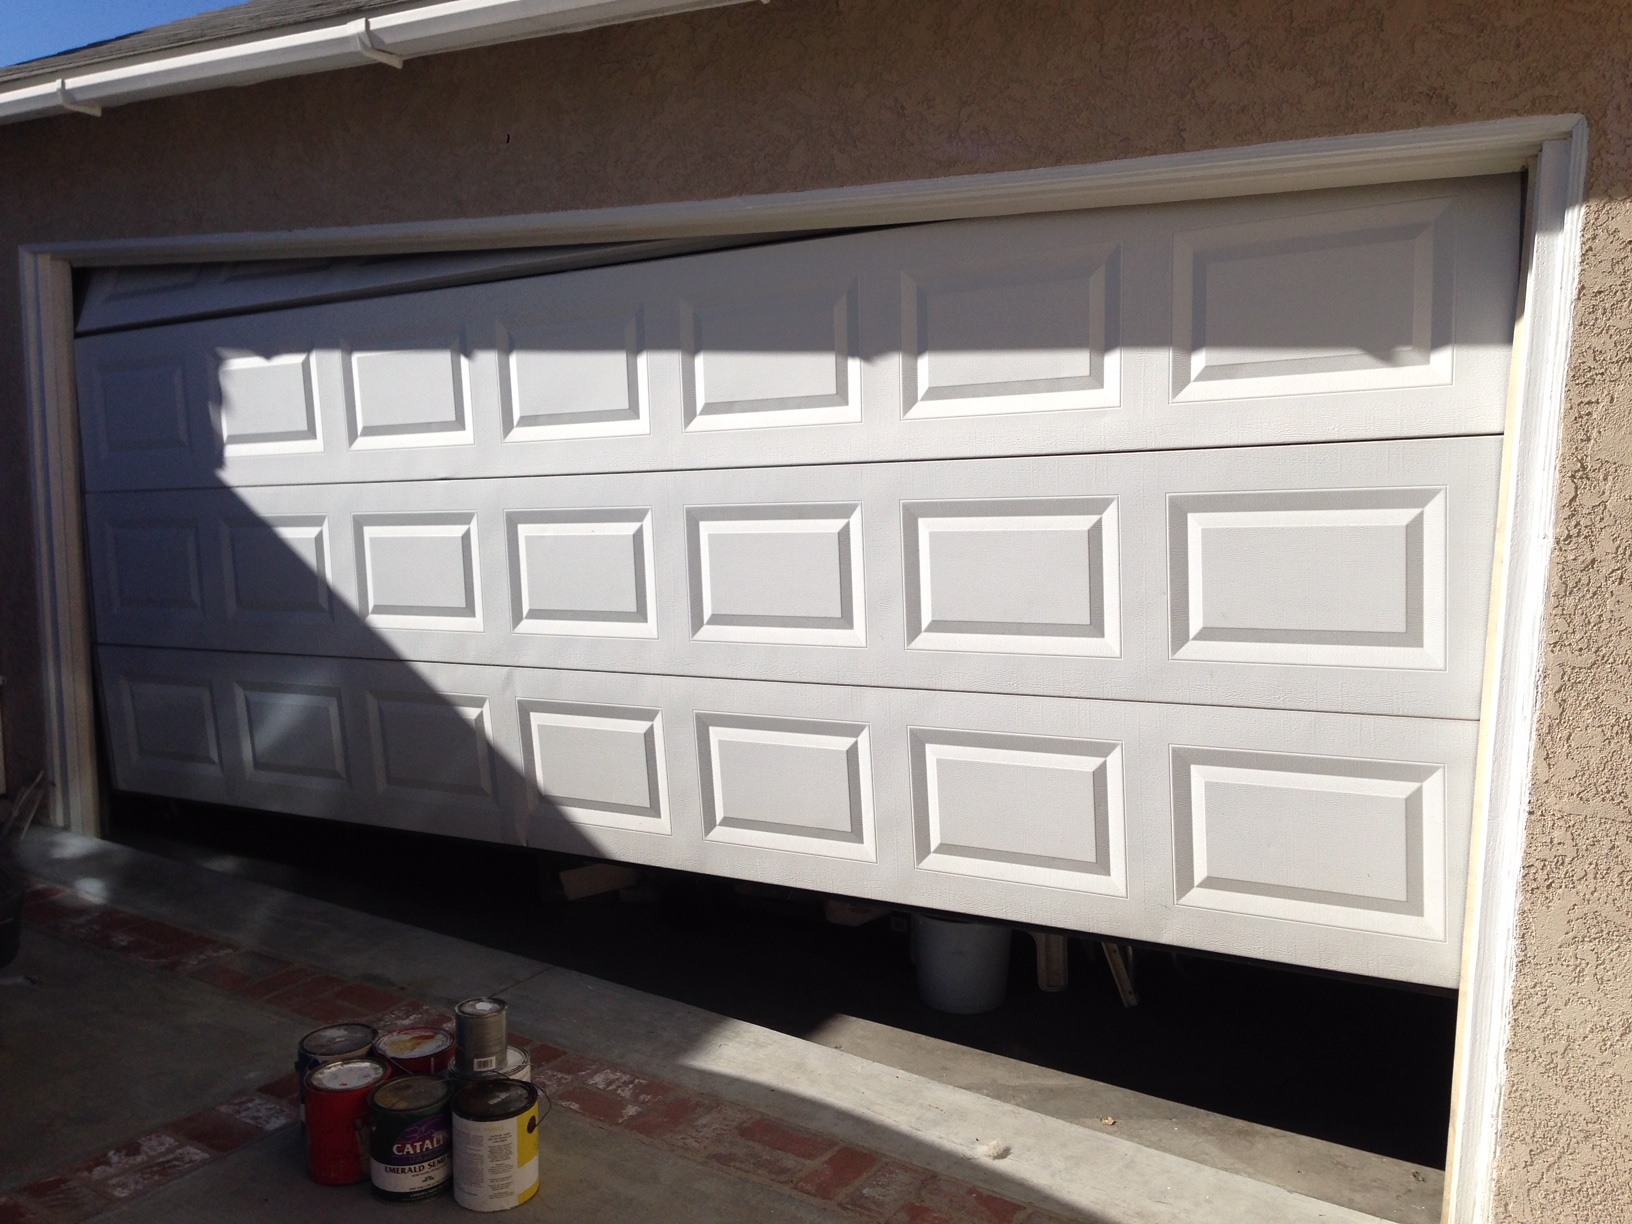 Chamberlain Garage Door in Thousand Oaks